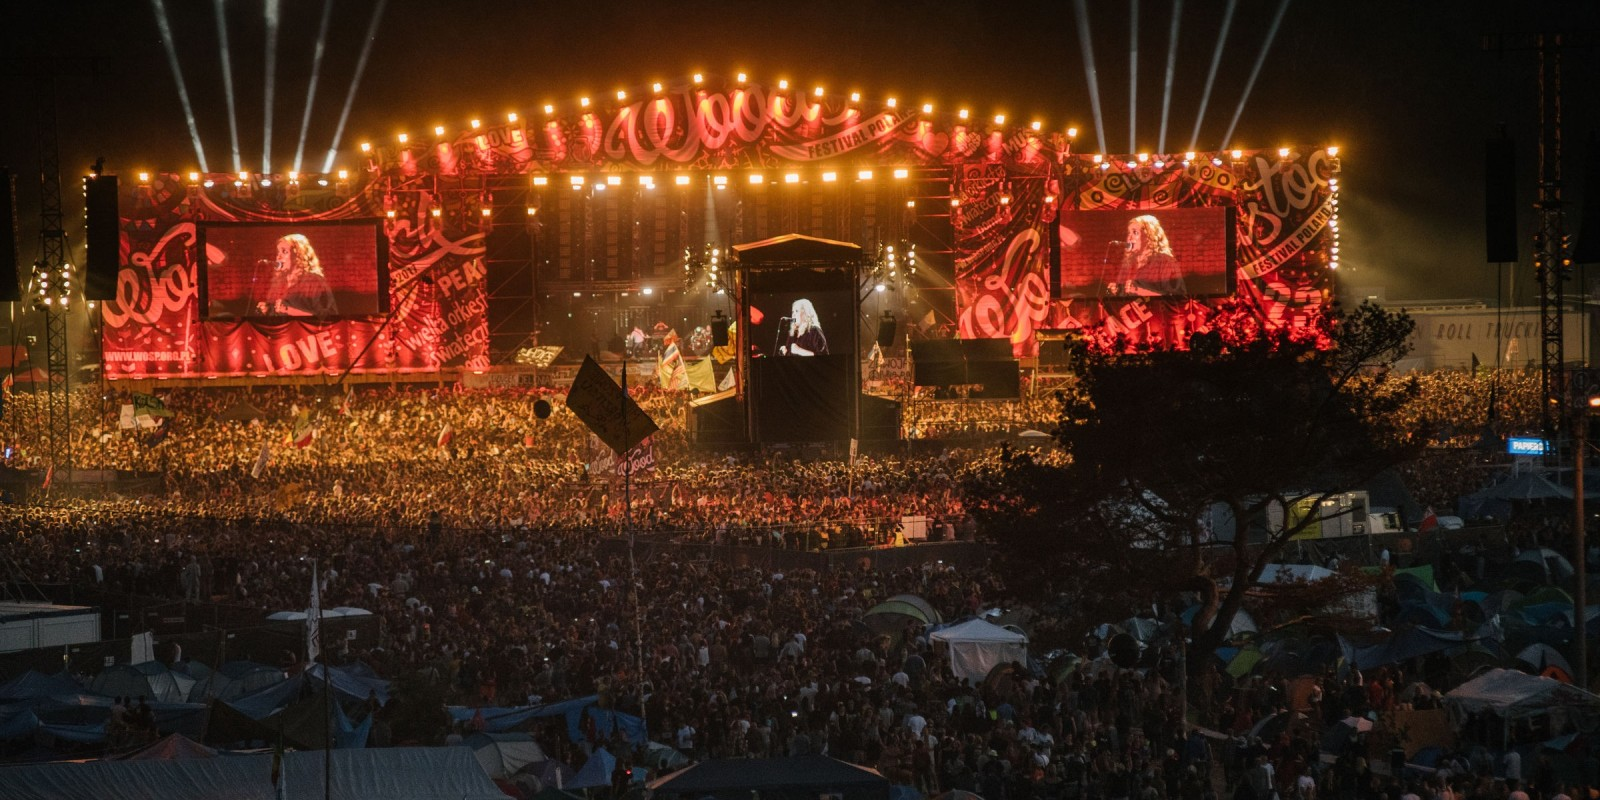 Woodstock Festival Poland 2017 - main stage and crowds of fans